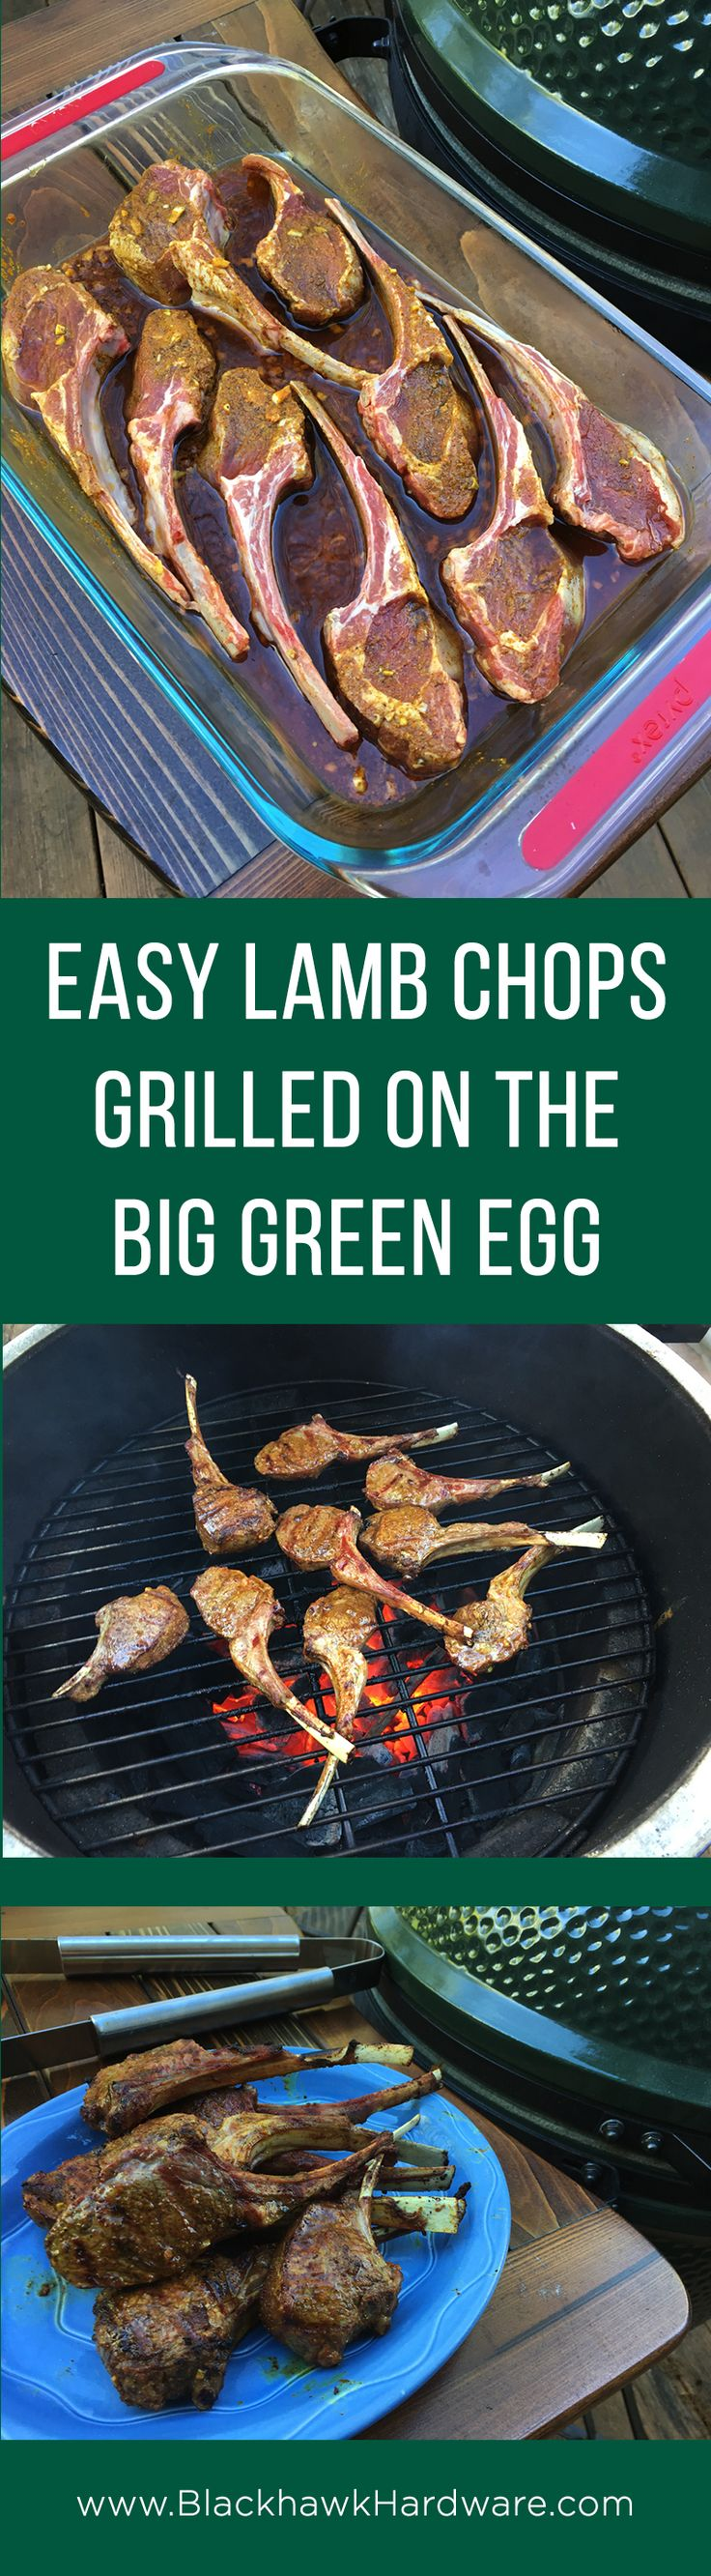 Easy and delicious recipe for grilled lamb chops or lollipops on the Big Green Egg #grilling #BigGreenEgg